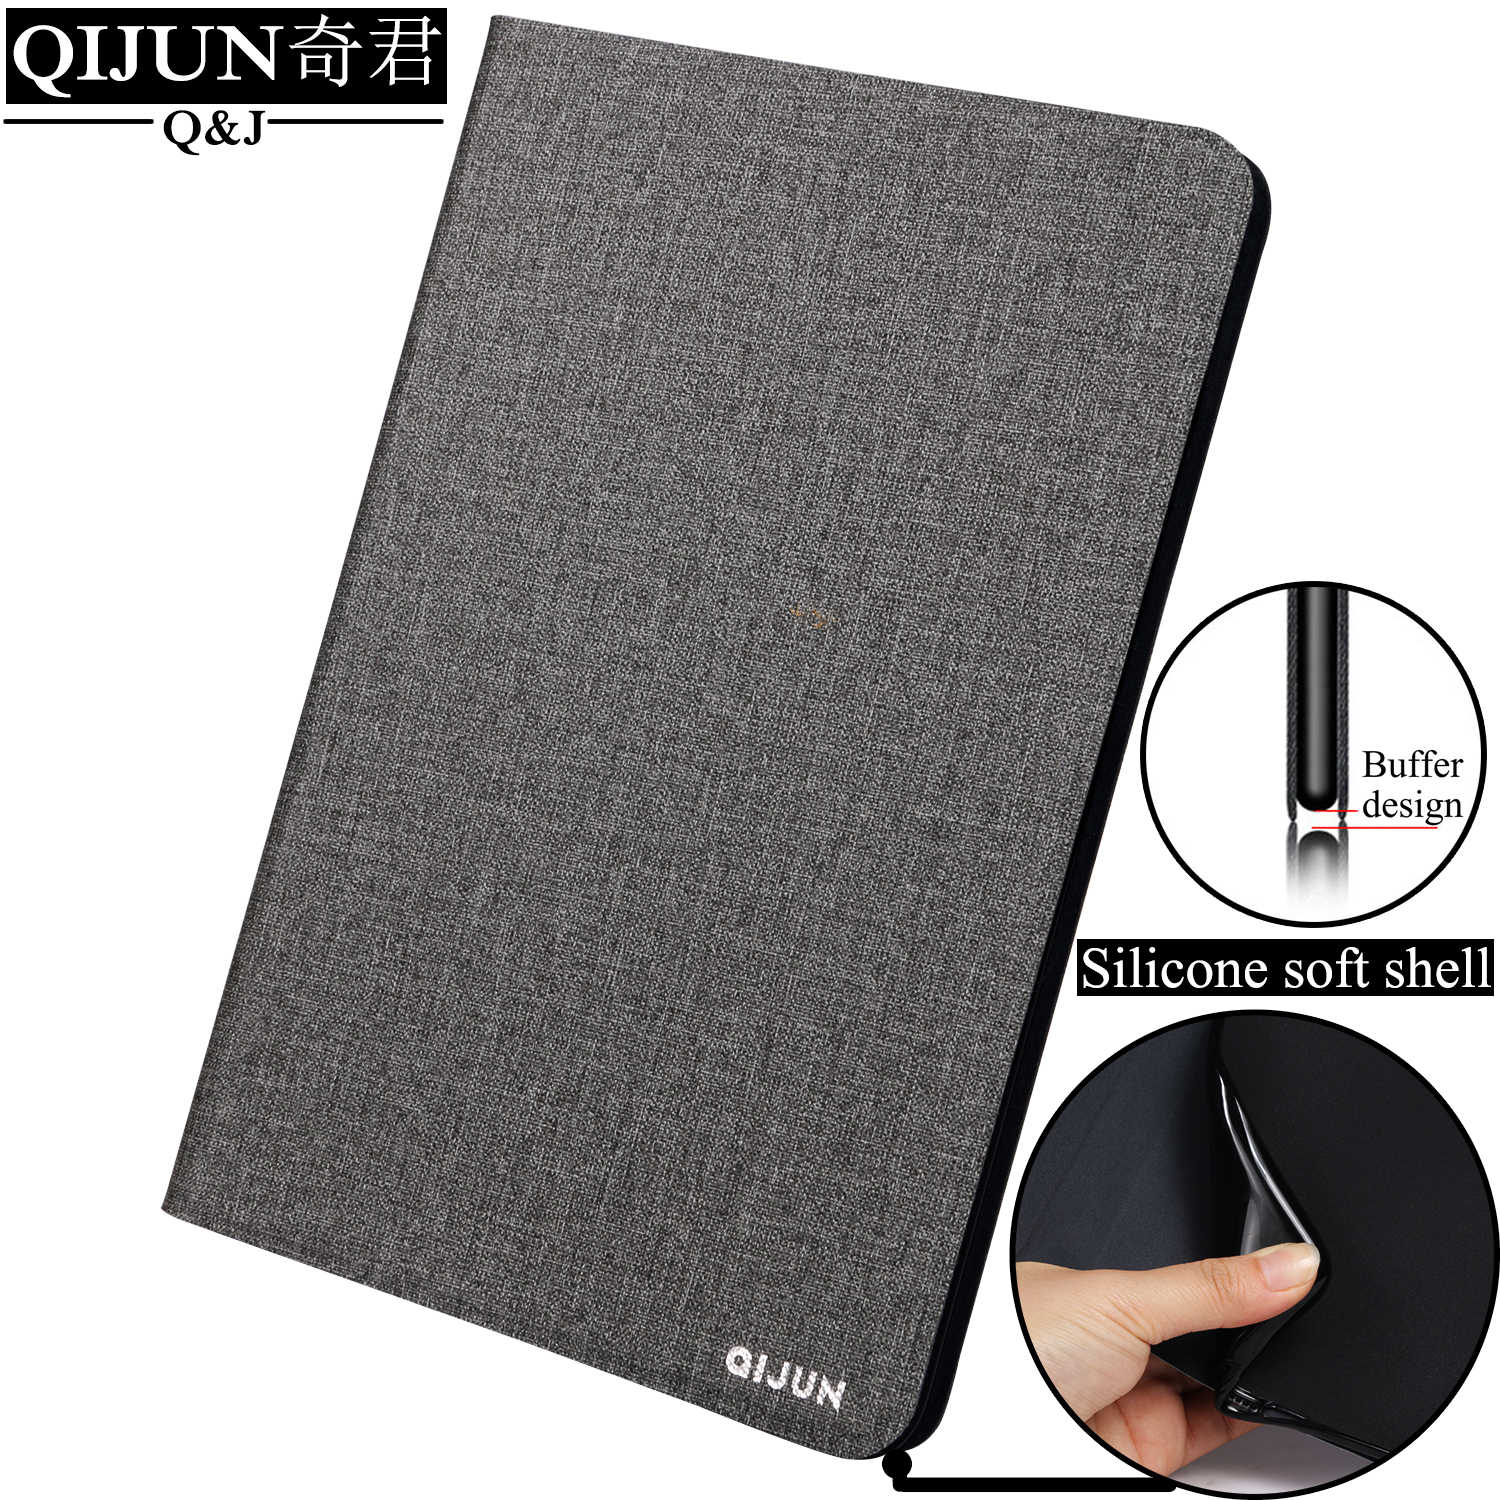 QIJUN tablet flip case for Huawei MediaPad T3 10 9.6-inch fundas protective Silicone soft Shell Stand cover for AGS-W09/L09/LO3